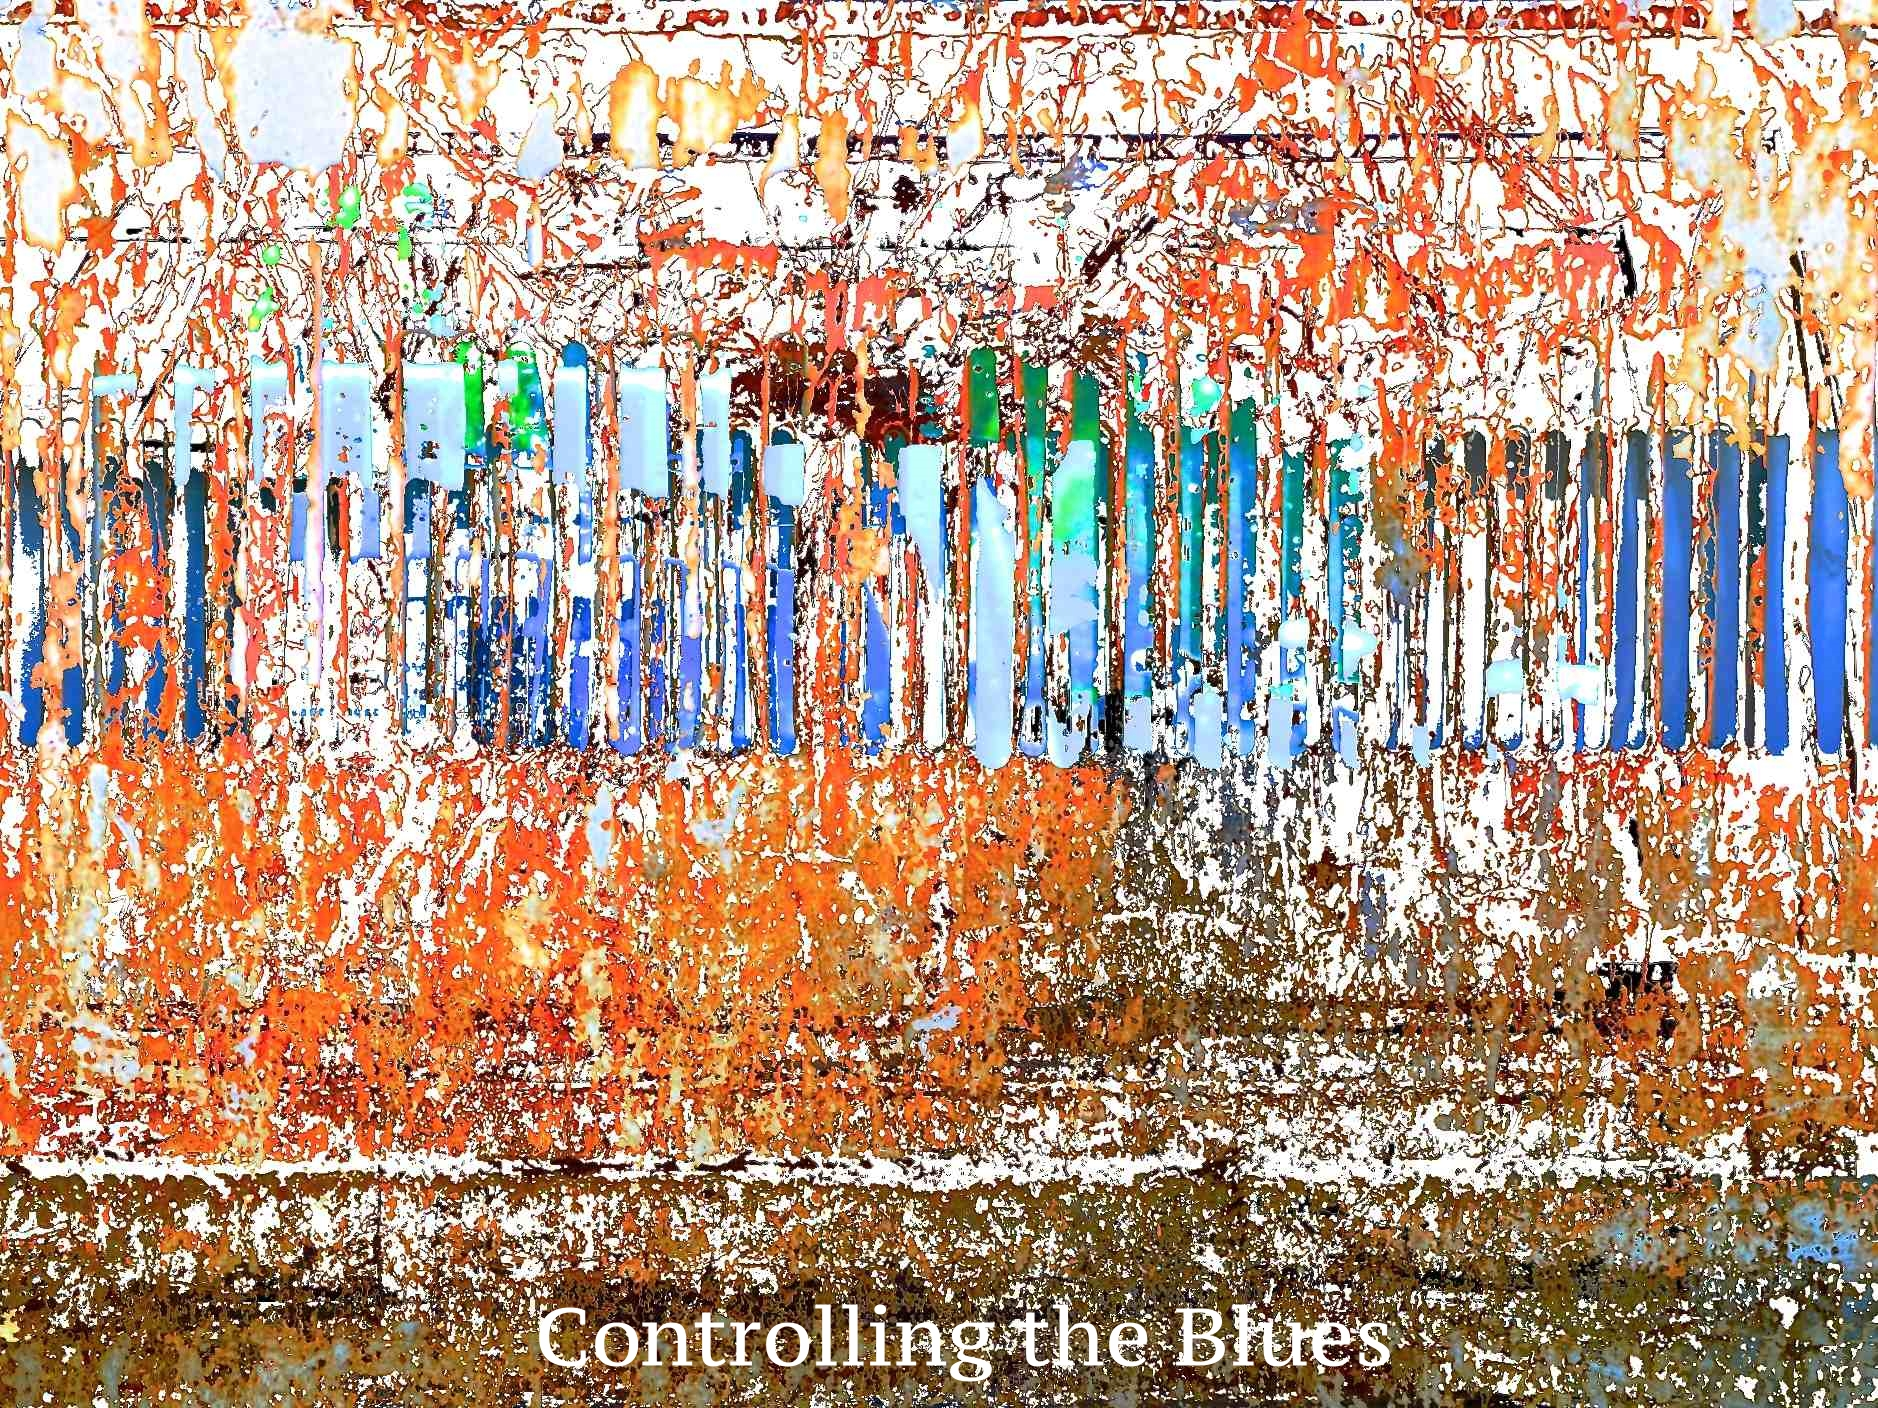 Controlling the blues